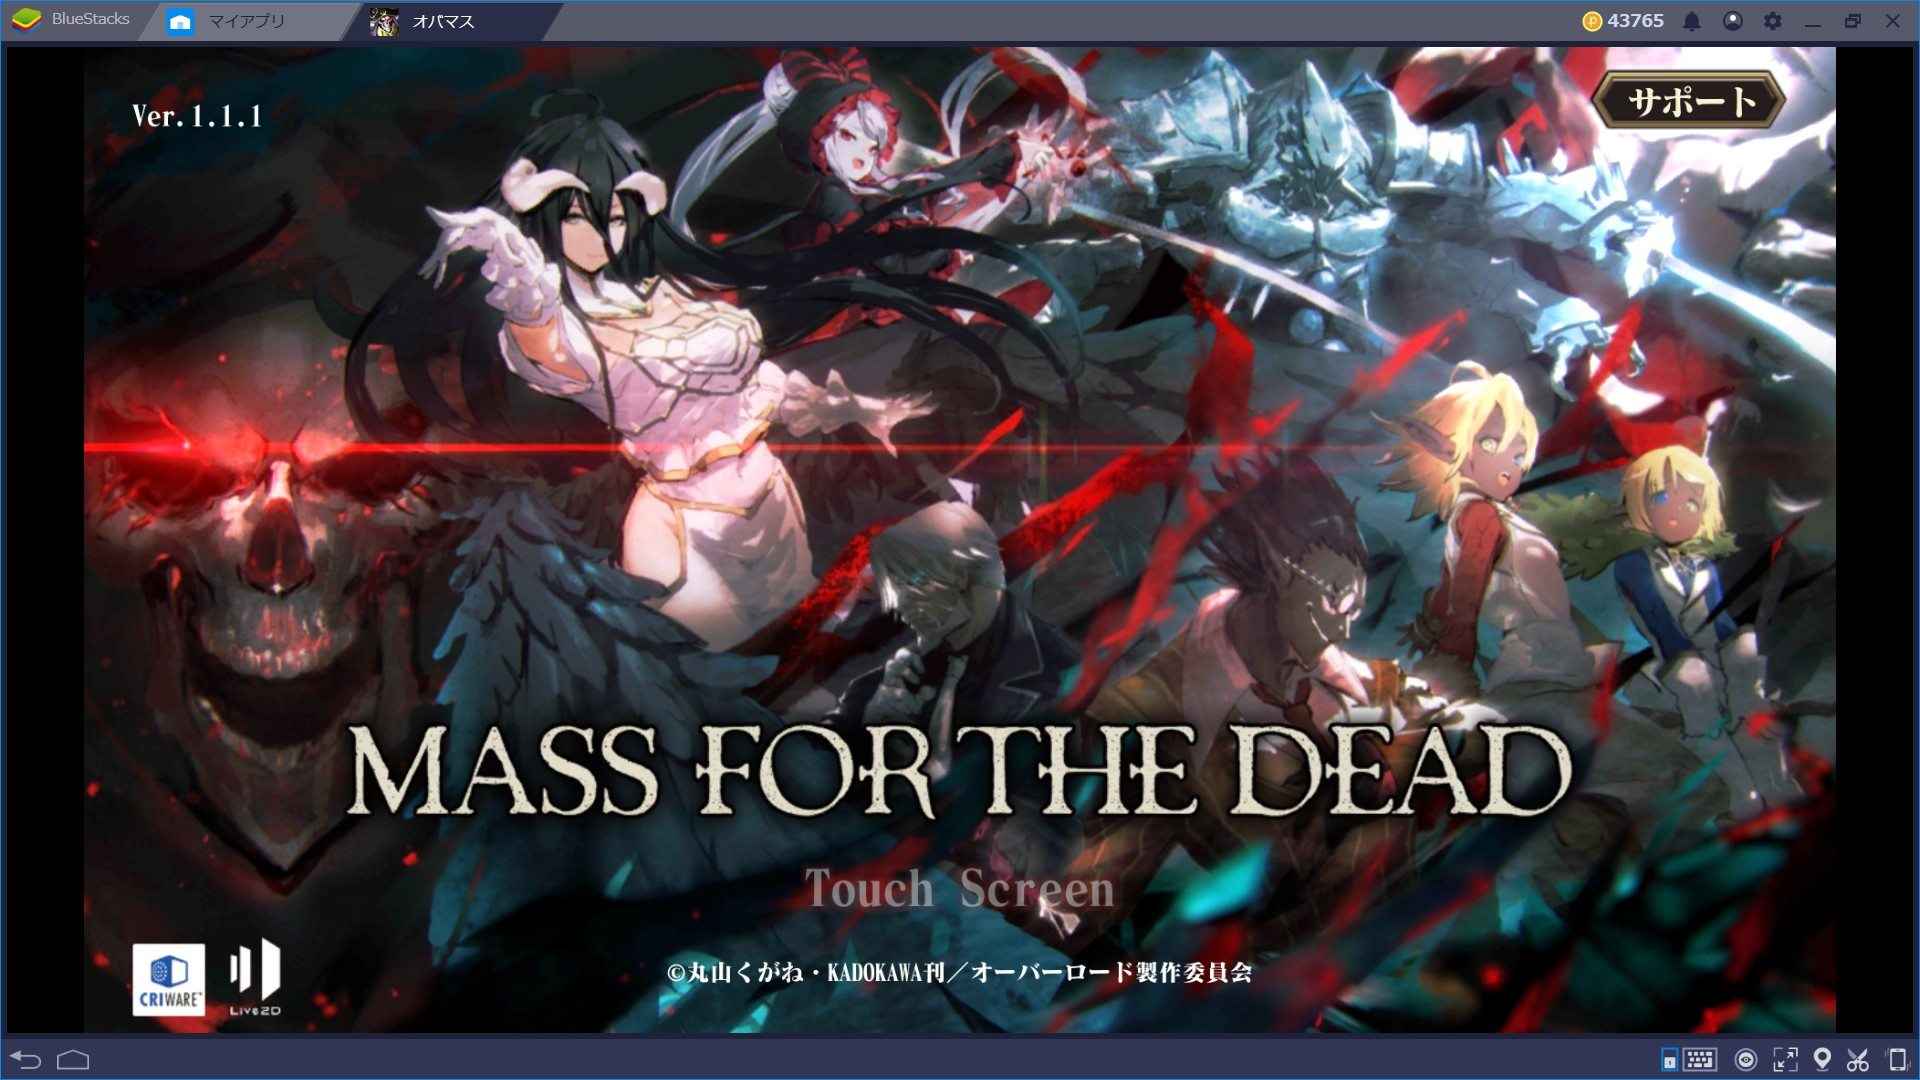 BlueStacksを使ってPCでMASS FOR THE DEADを遊ぼう